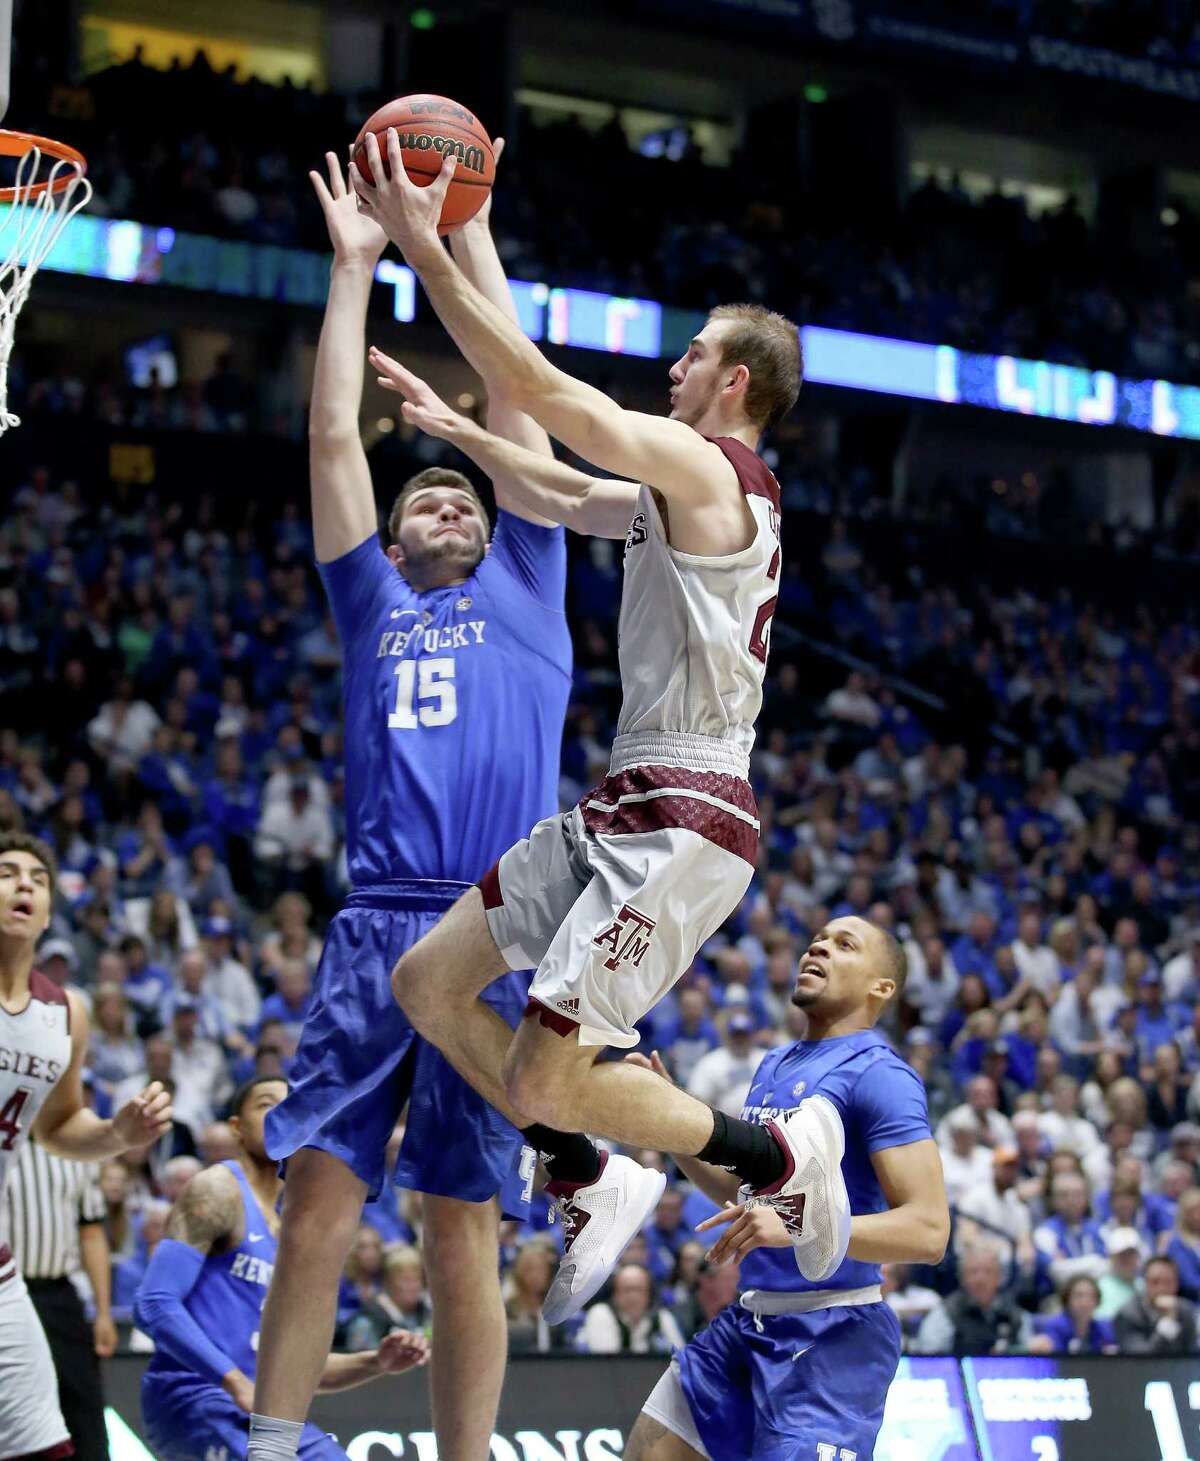 NASHVILLE, TN - MARCH 13: Alex Caruso #21 of the Texas A&M Aggies shoots the ball against the Kentucky Wildcats during the Championship Game of the SEC Basketball Tournament at Bridgestone Arena on March 13, 2016 in Nashville, Tennessee.